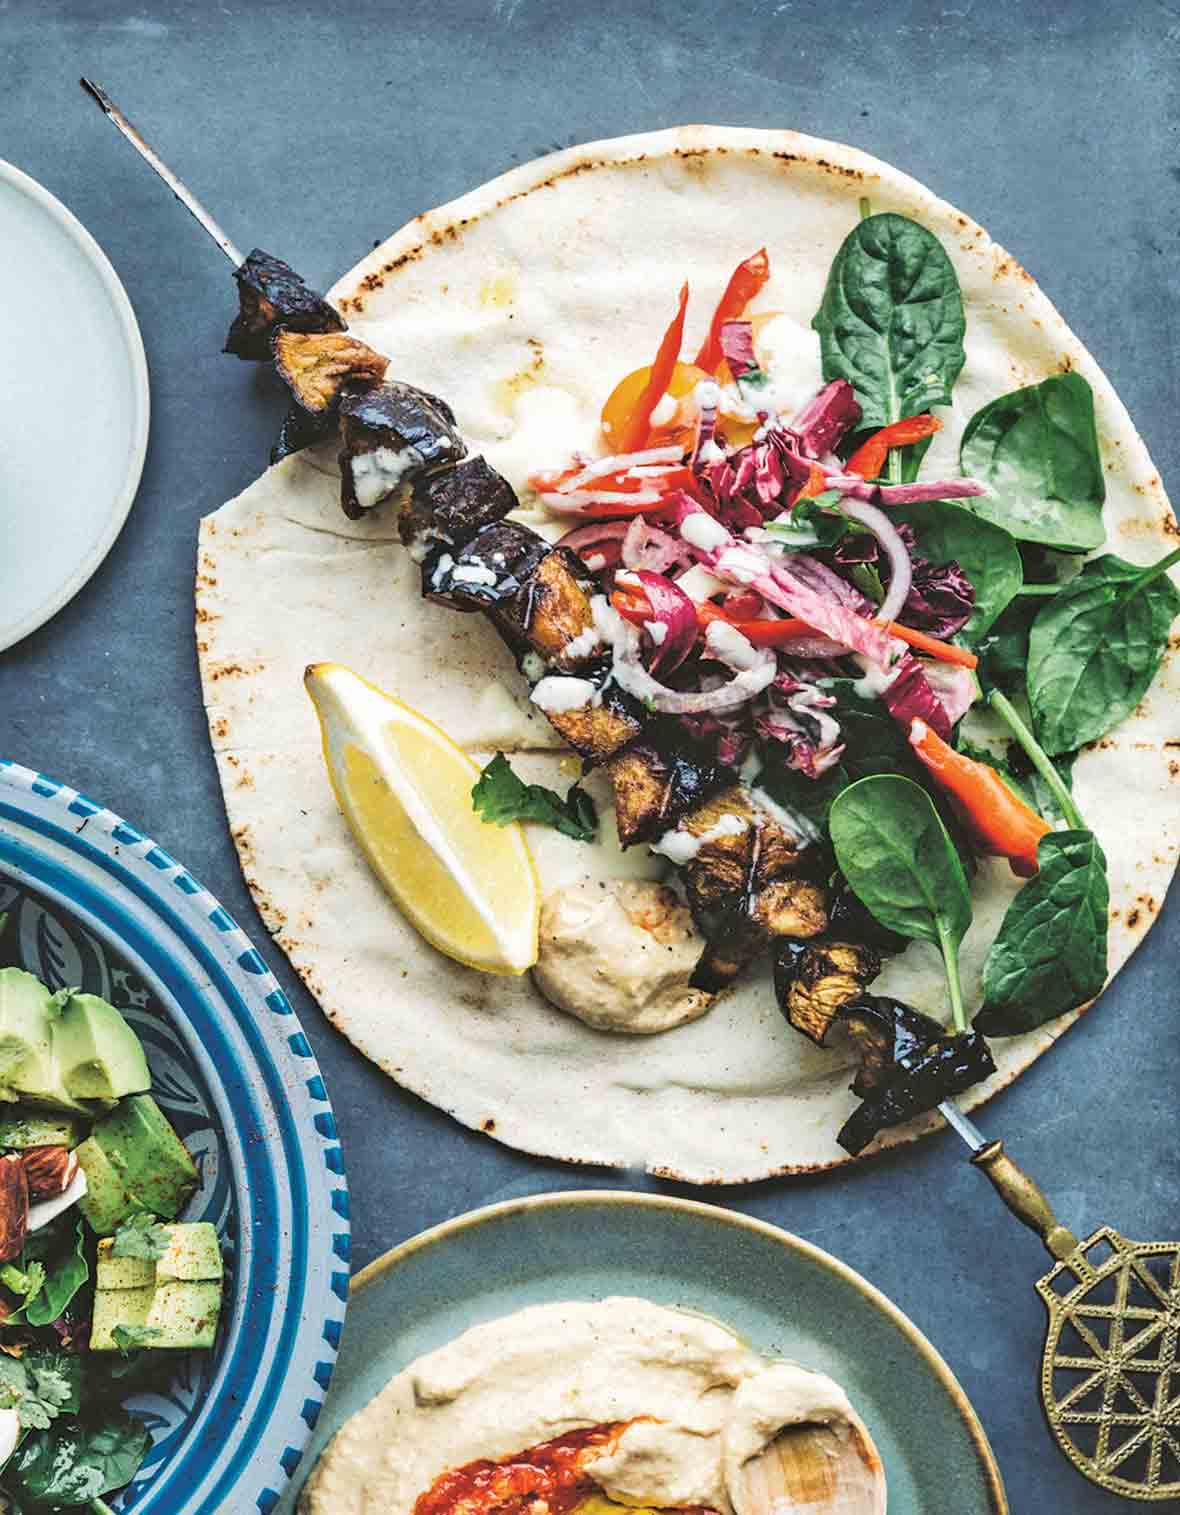 An eggplant kebab on a pita with a lemon wedge, garlic sauce, spinach leaves, red onion, cherry tomatoes, red pepper, and cabbage.